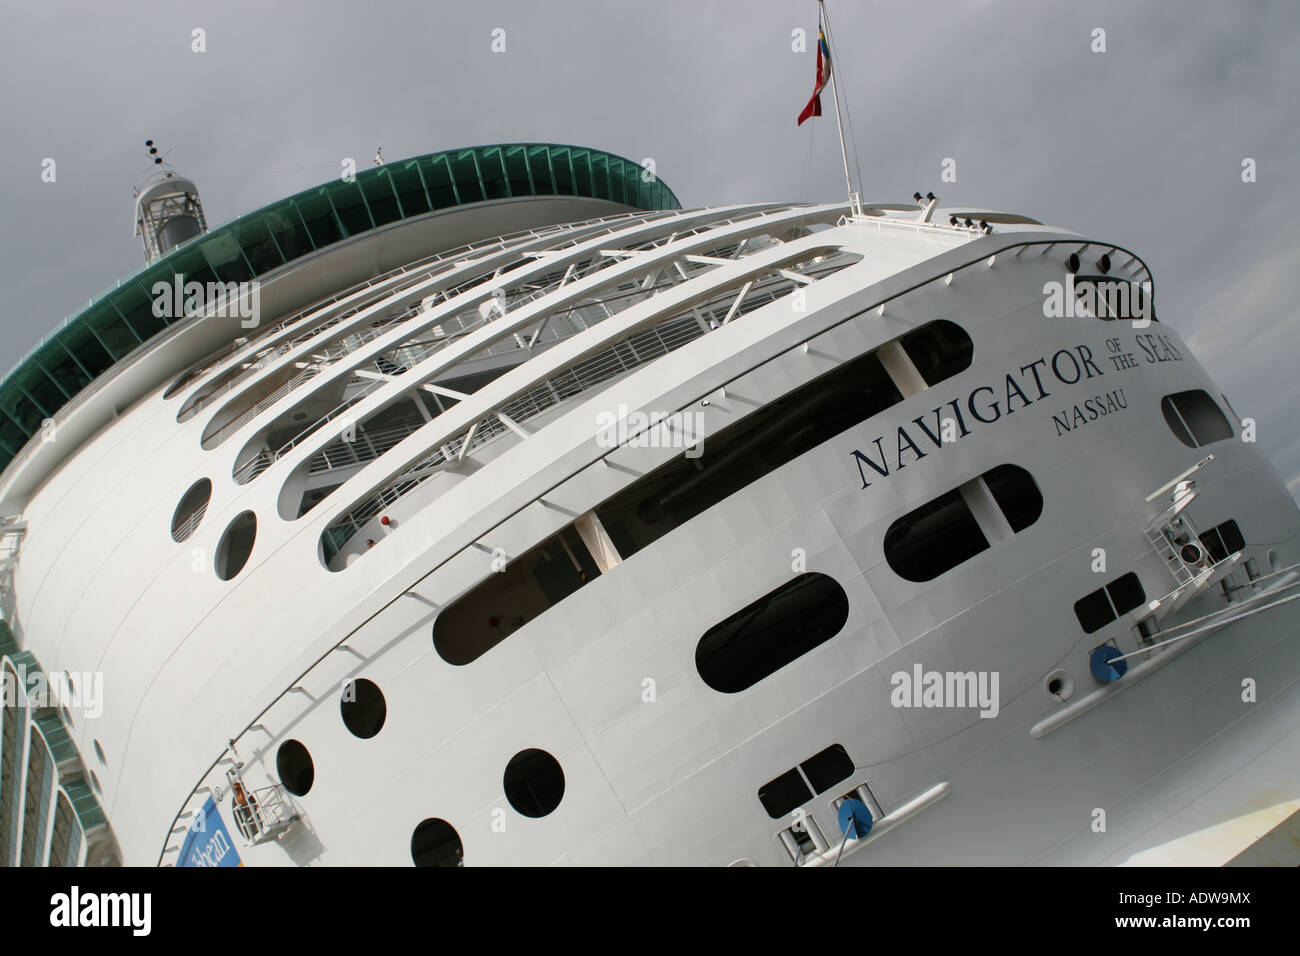 Rear of the the Royal Caribbean cruise ship Navigator of the Seas. - Stock Image